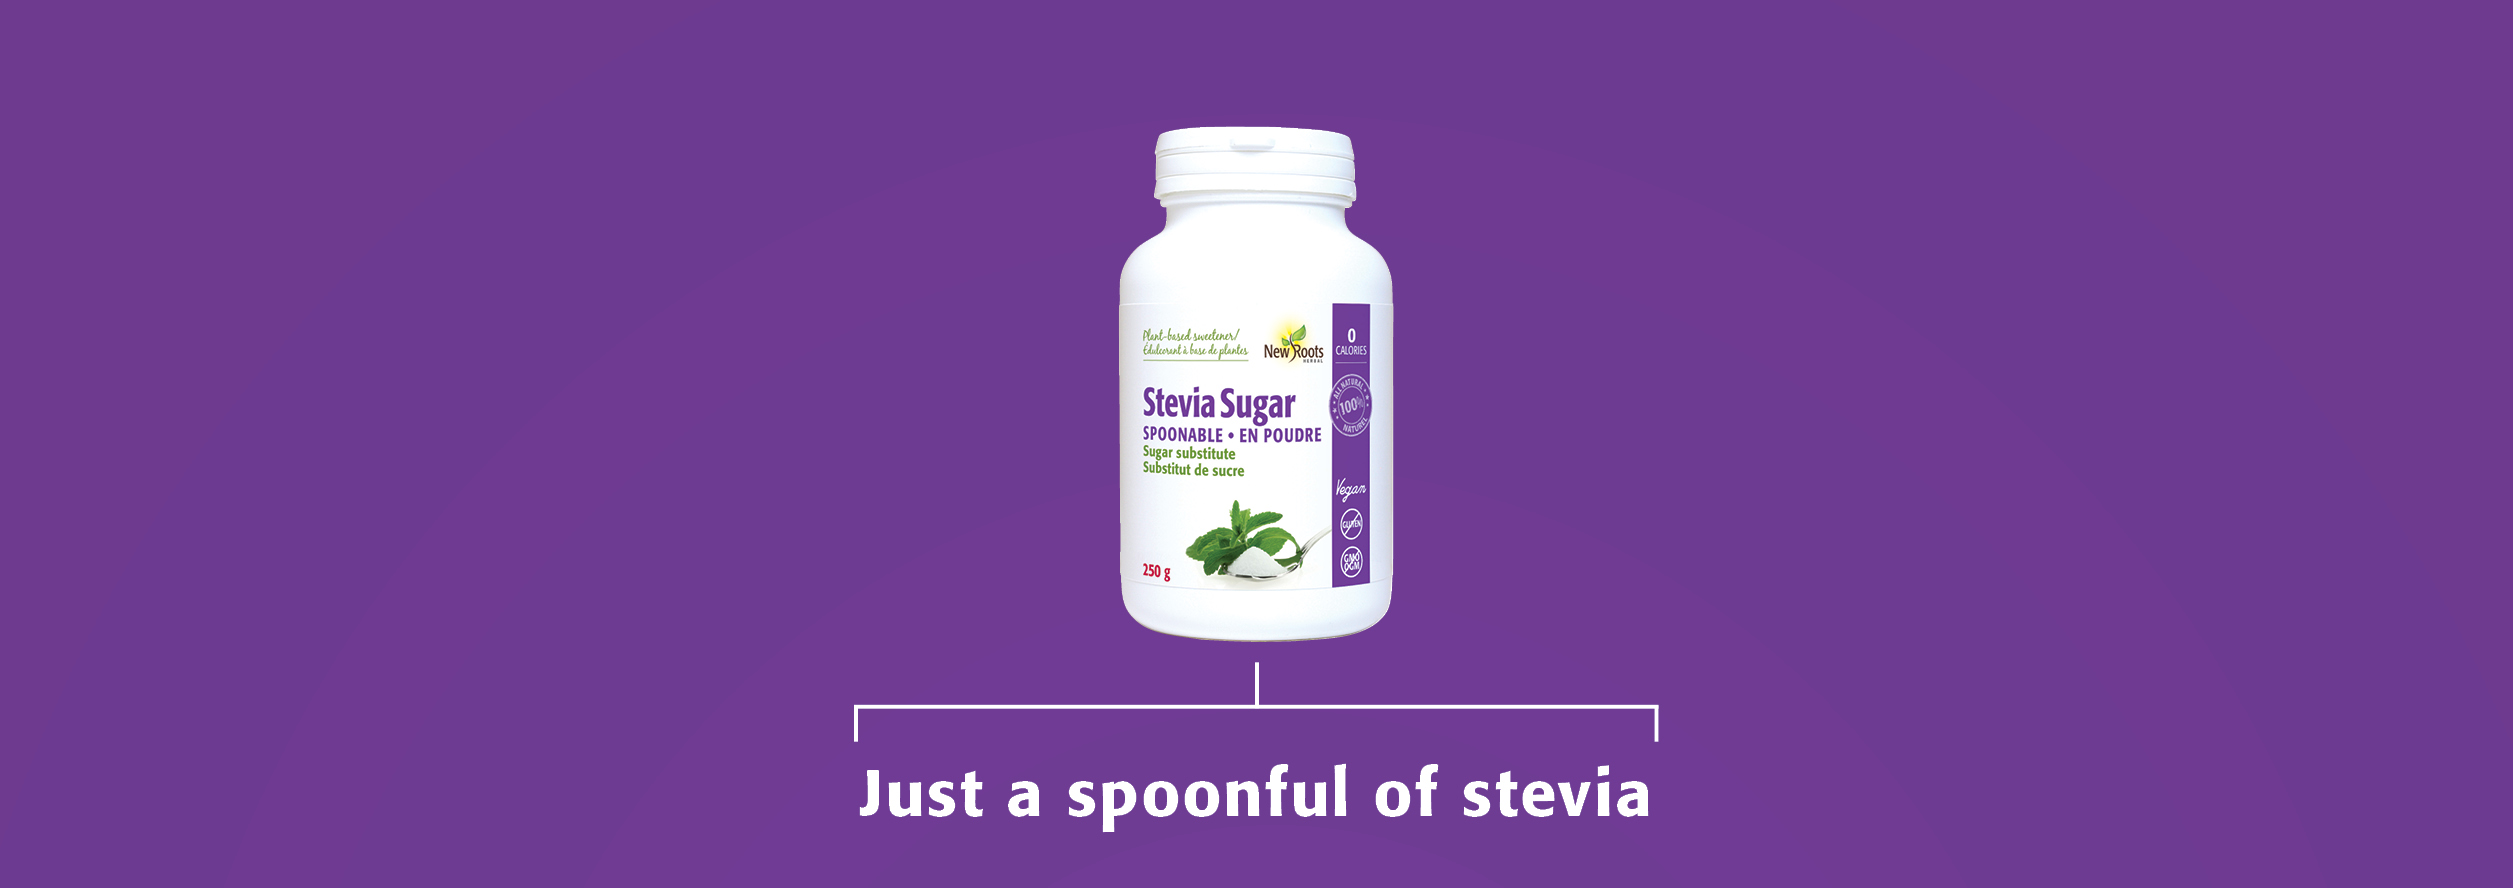 Just a spoonful of stevia